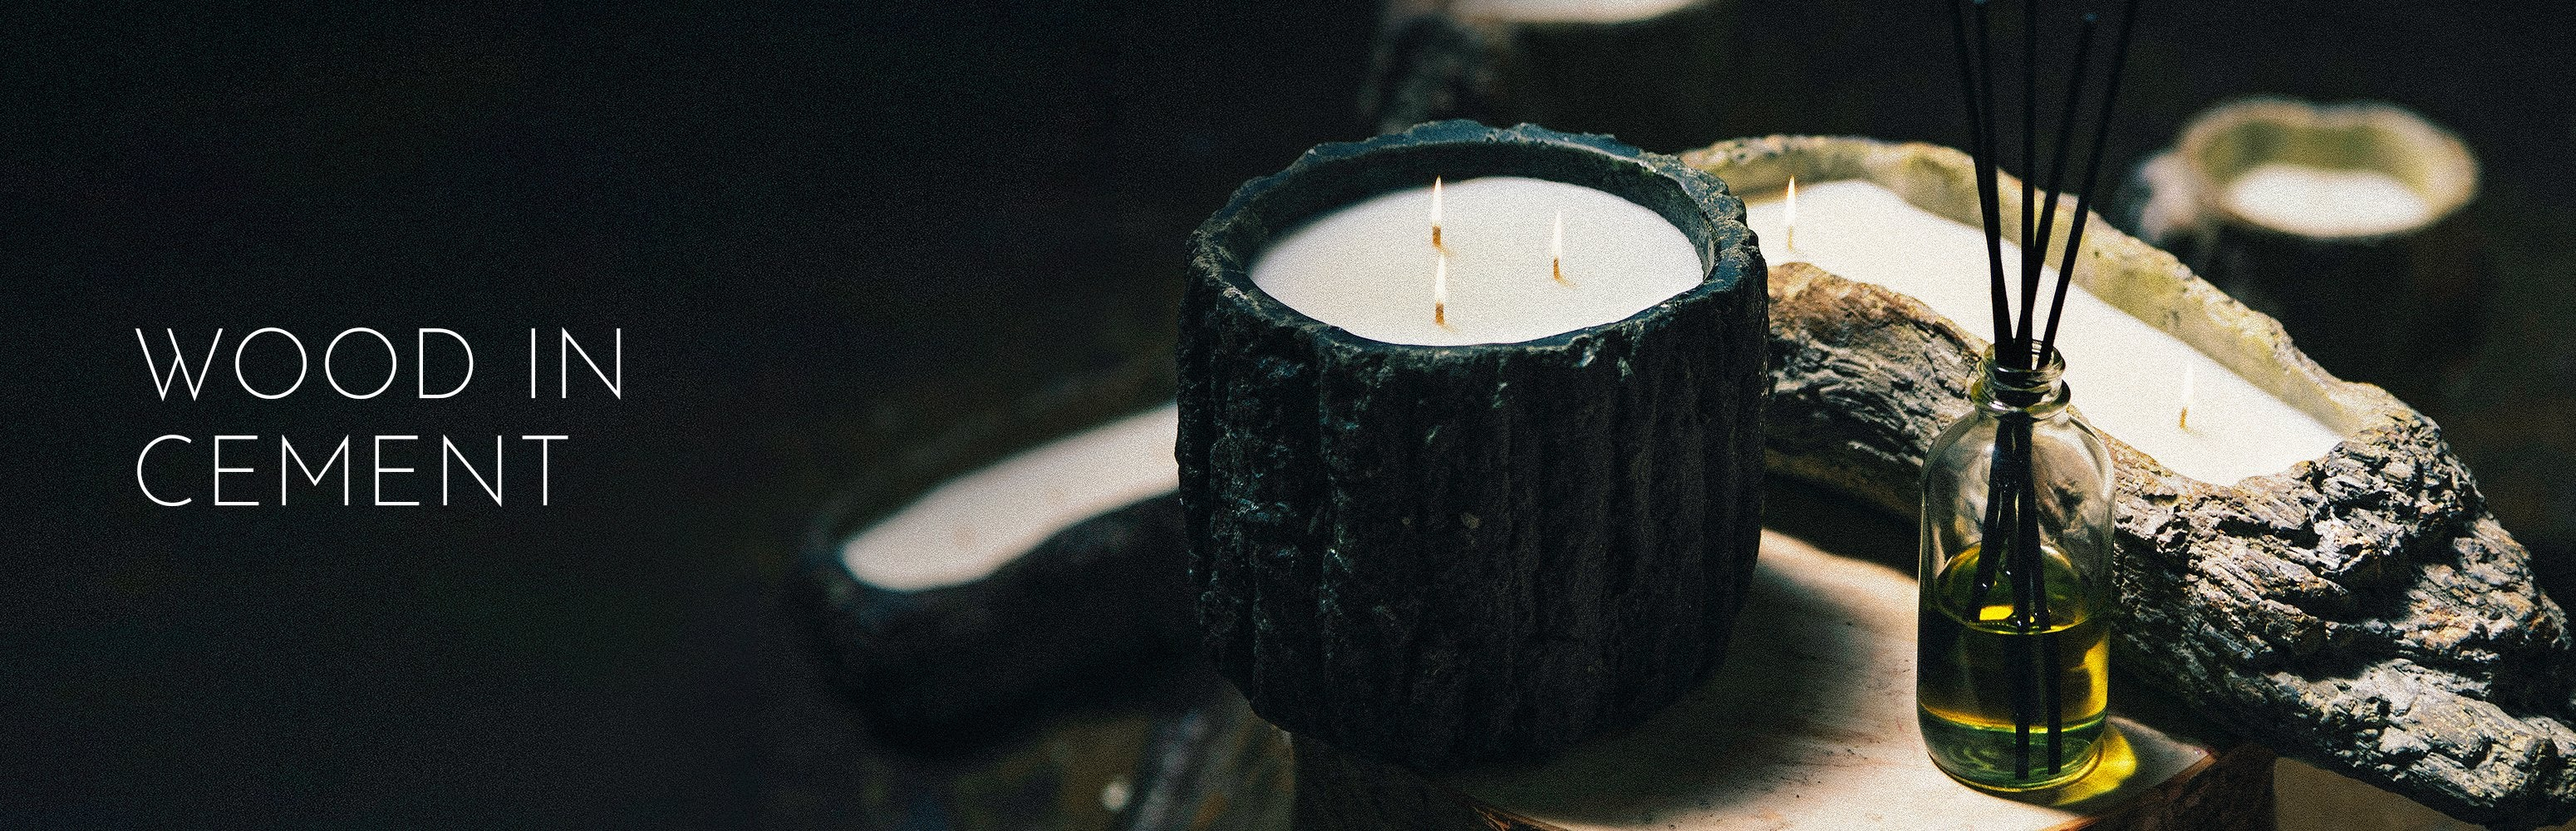 Stone Candles Wood in Cement Collection Banner